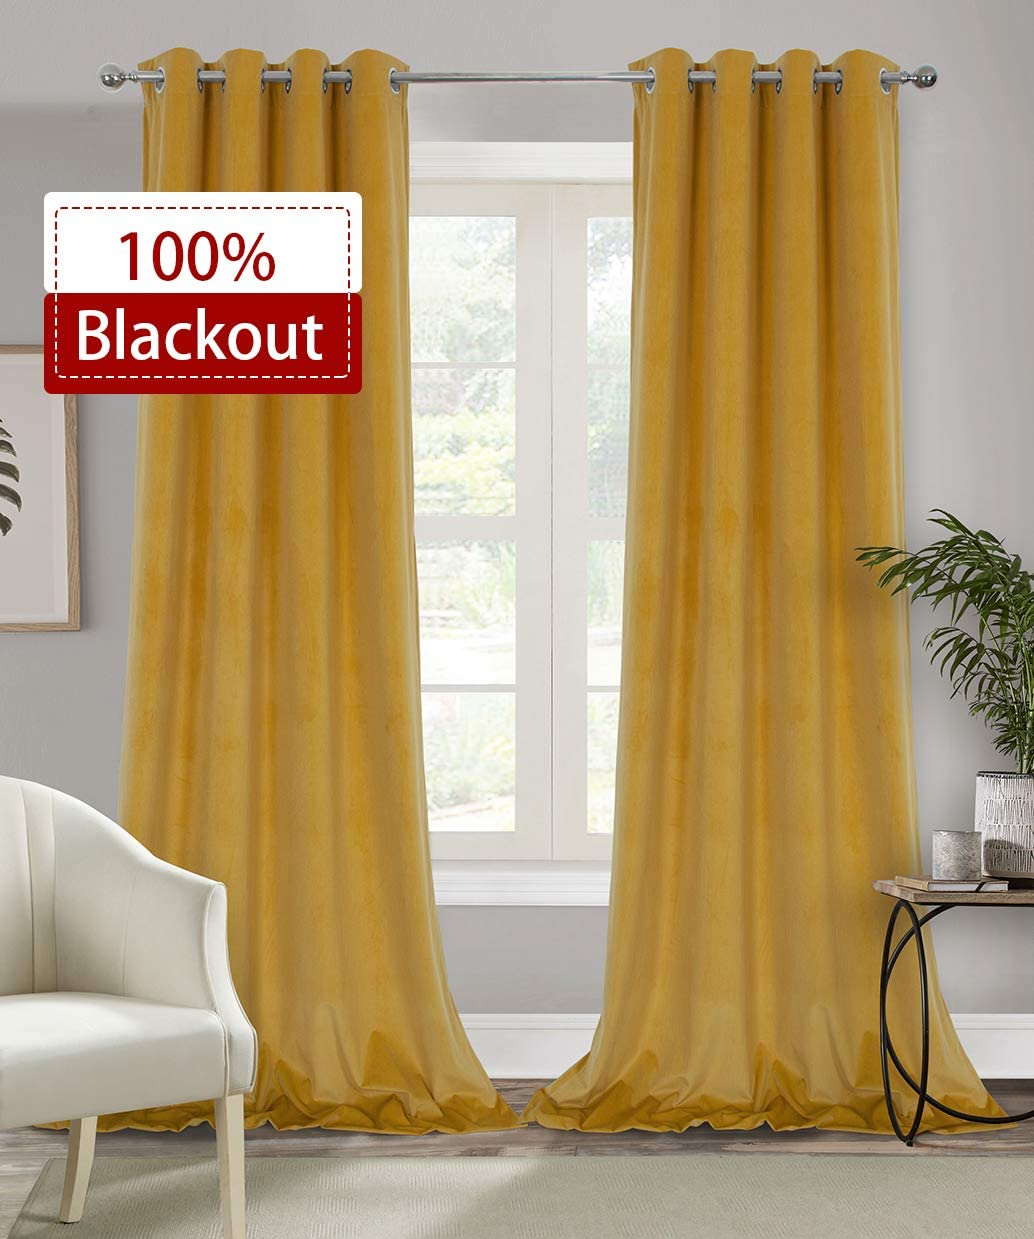 Alexandra Cole 100 Blackout Curtains for Bedroom Living Room Yellow Soft Velvet Curtains 108 Inches Length 2 Panels Thermal Insulated Window Curtains